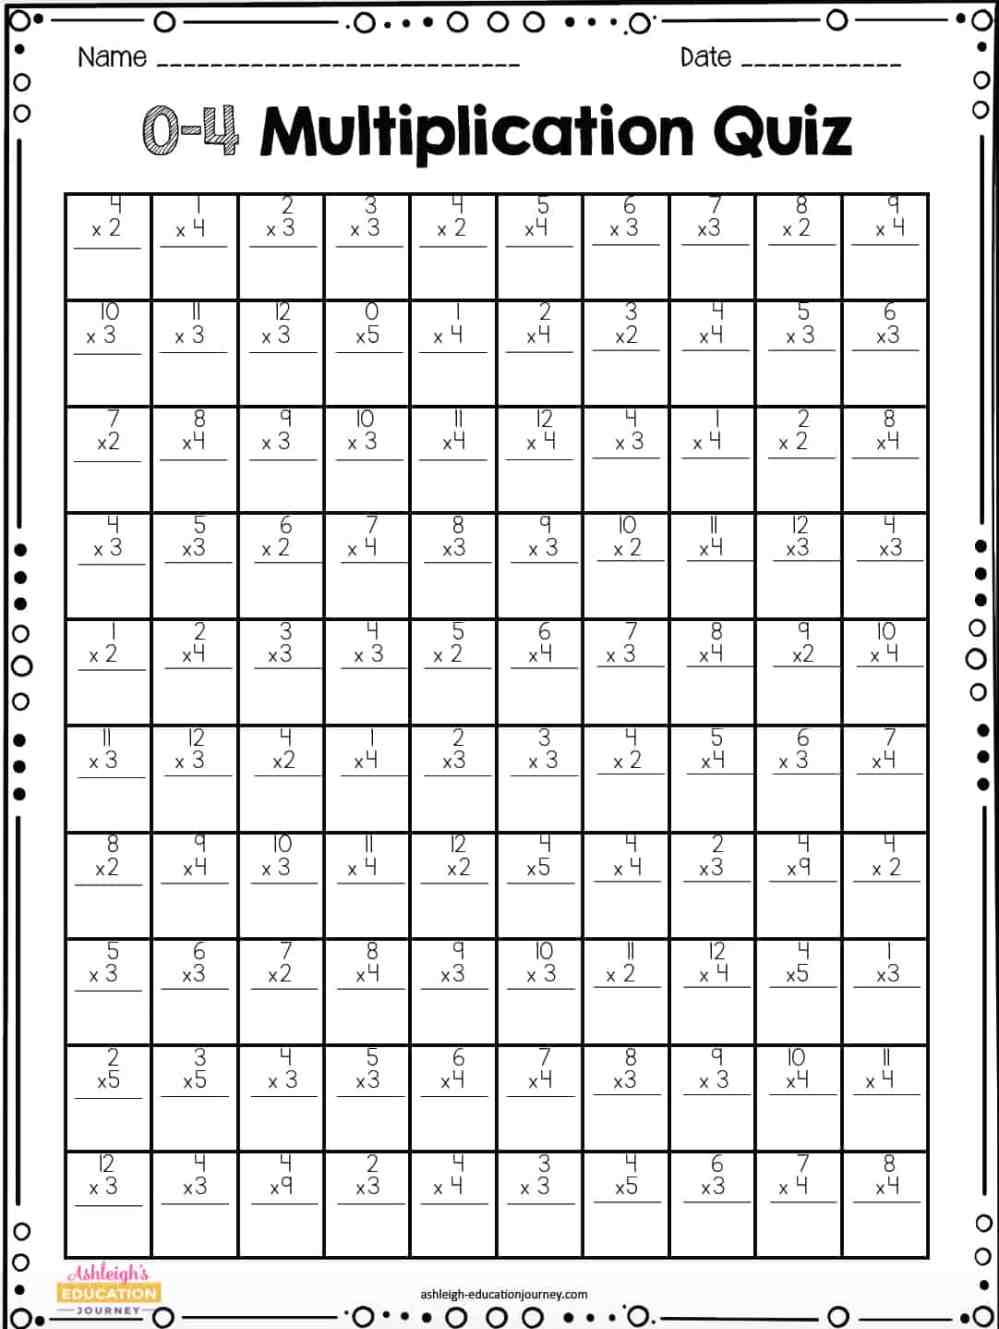 medium resolution of Multiplication Facts for Upper Elementary Students - Ashleigh's Education  Journey